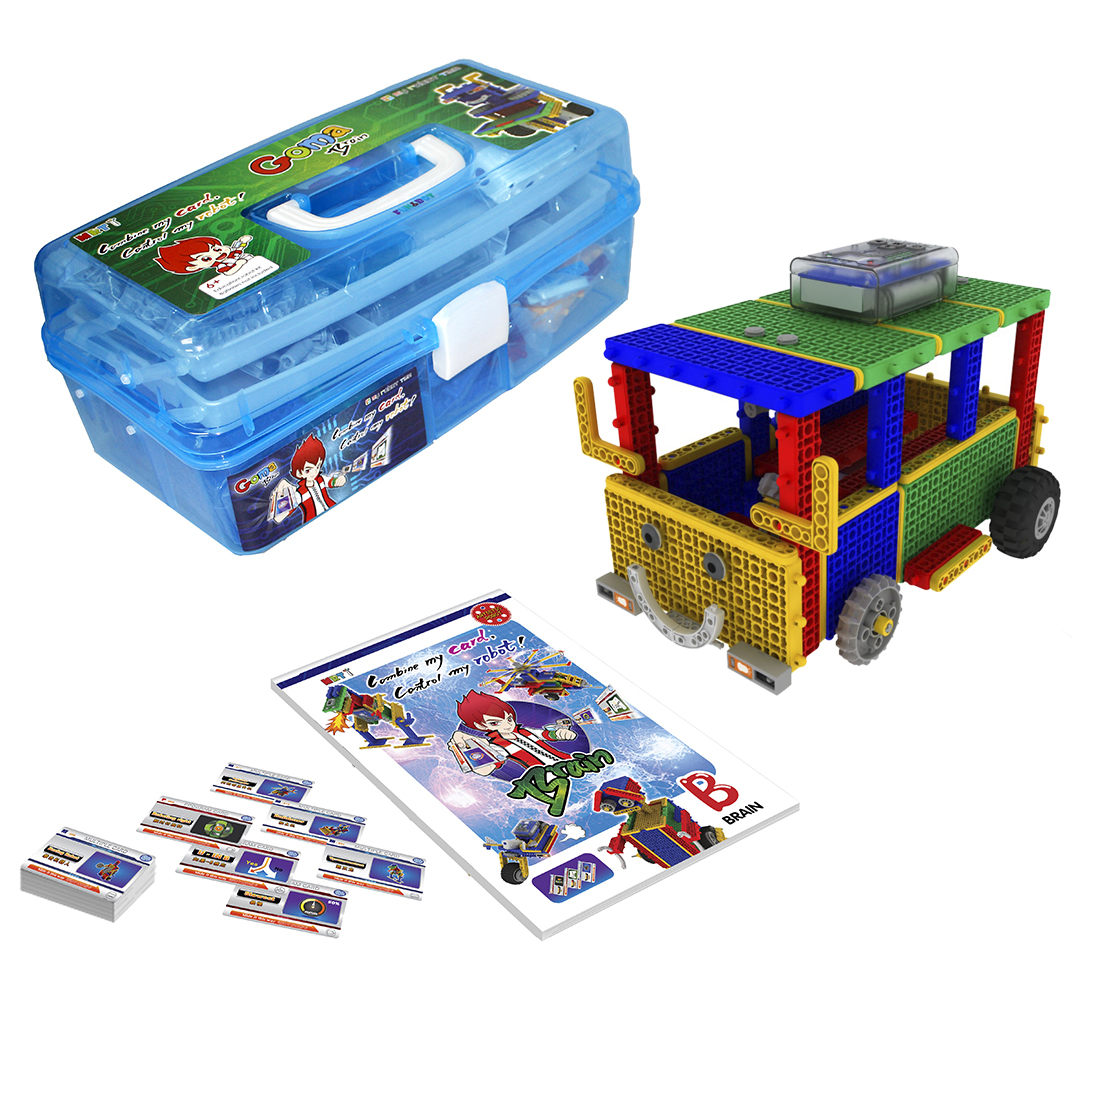 MRT 1-Brain B Colorful Robots Bulding Block Kit Assembly Educational Robot Toy For Beginner 6-8  ( Learn With Goma-Brain A)